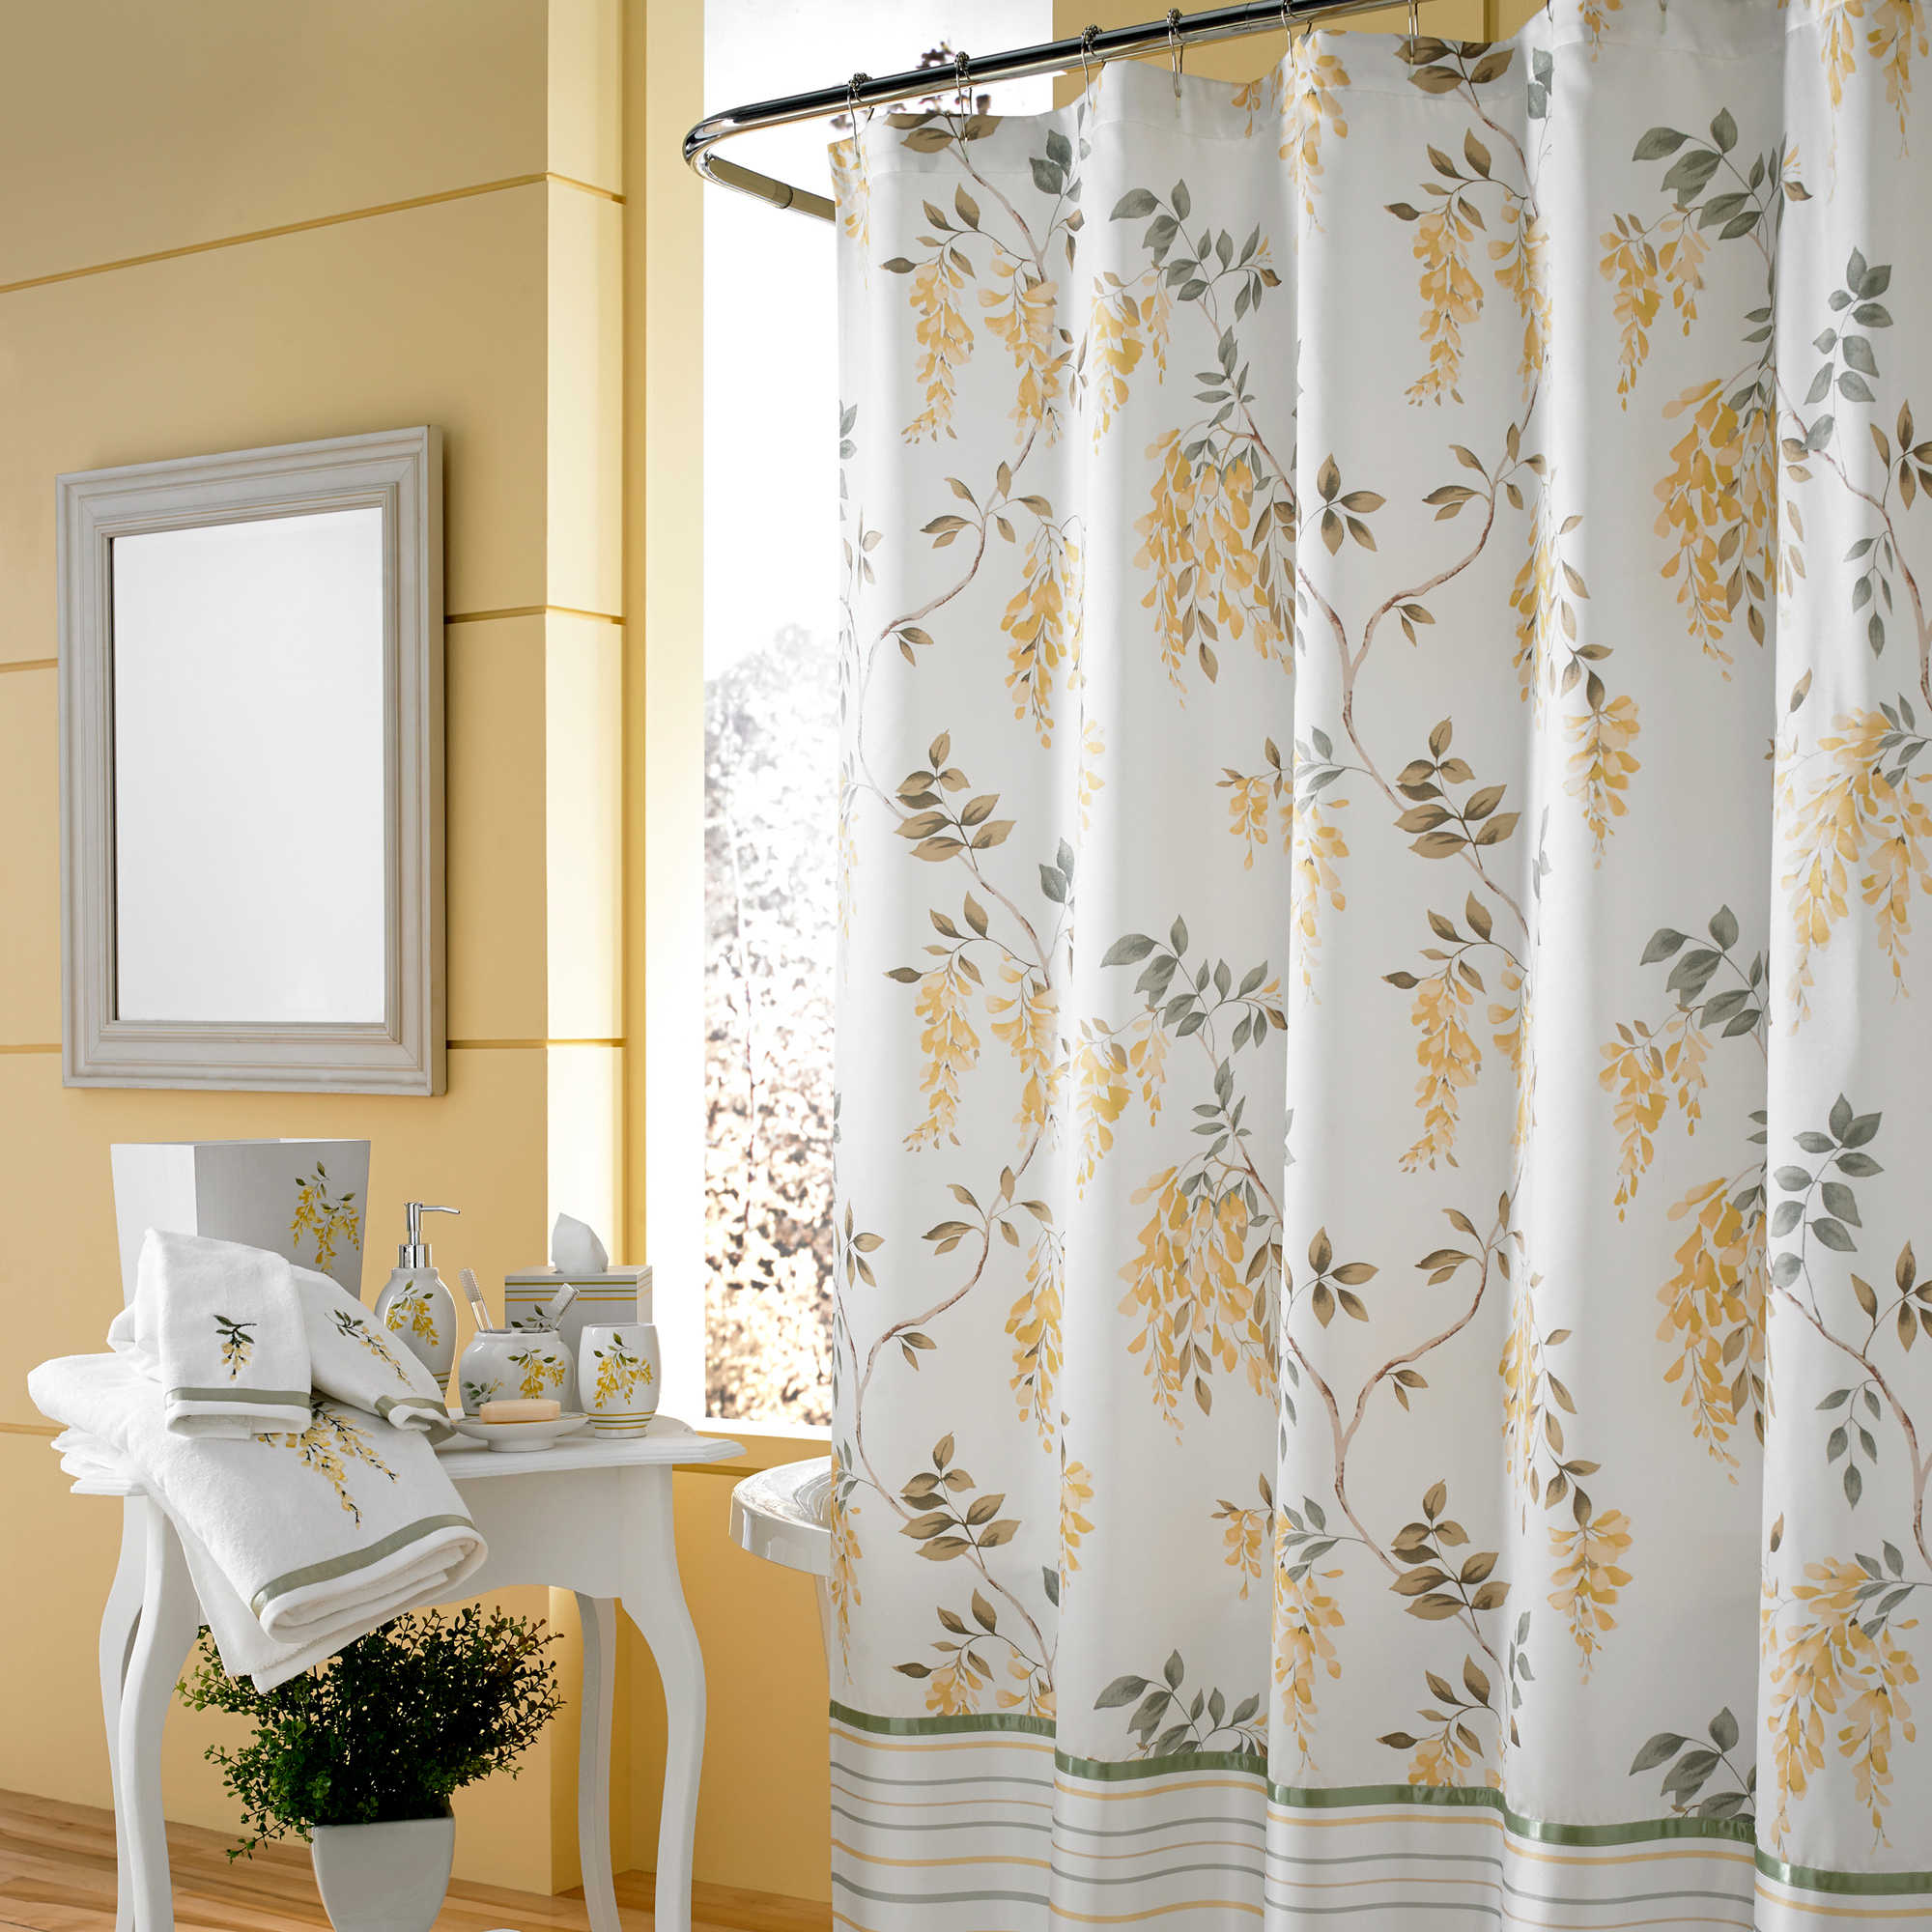 Floral Patterns In Shower Curtain A White Console Table With Bathing Supplies And Towel Square Decorative